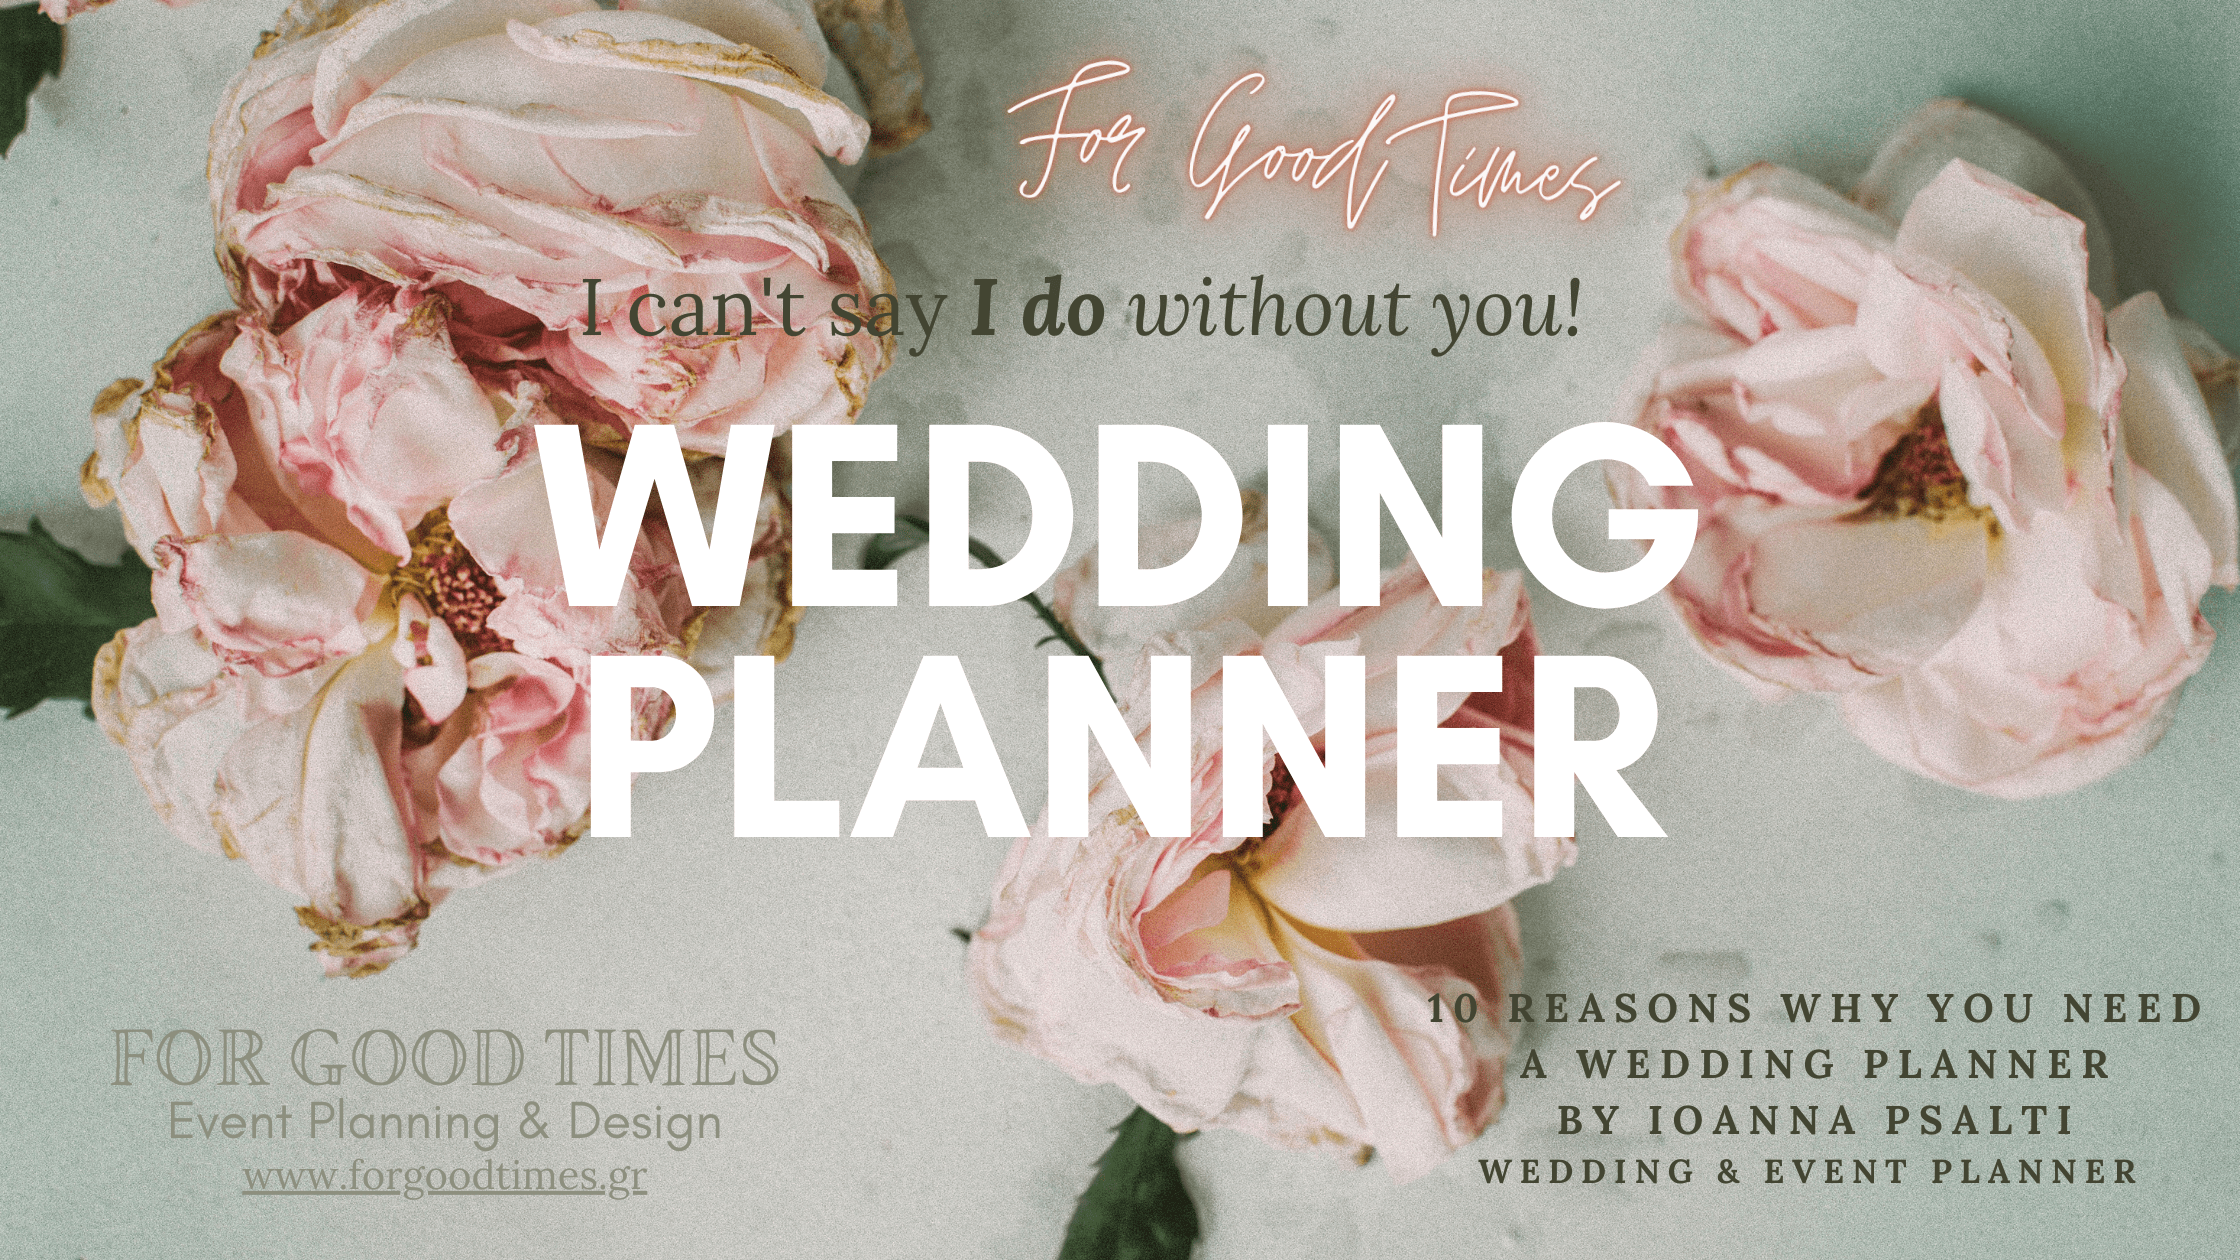 10 REASONS WHY YOU NEED TO HIRE A WEDDING PLANNER